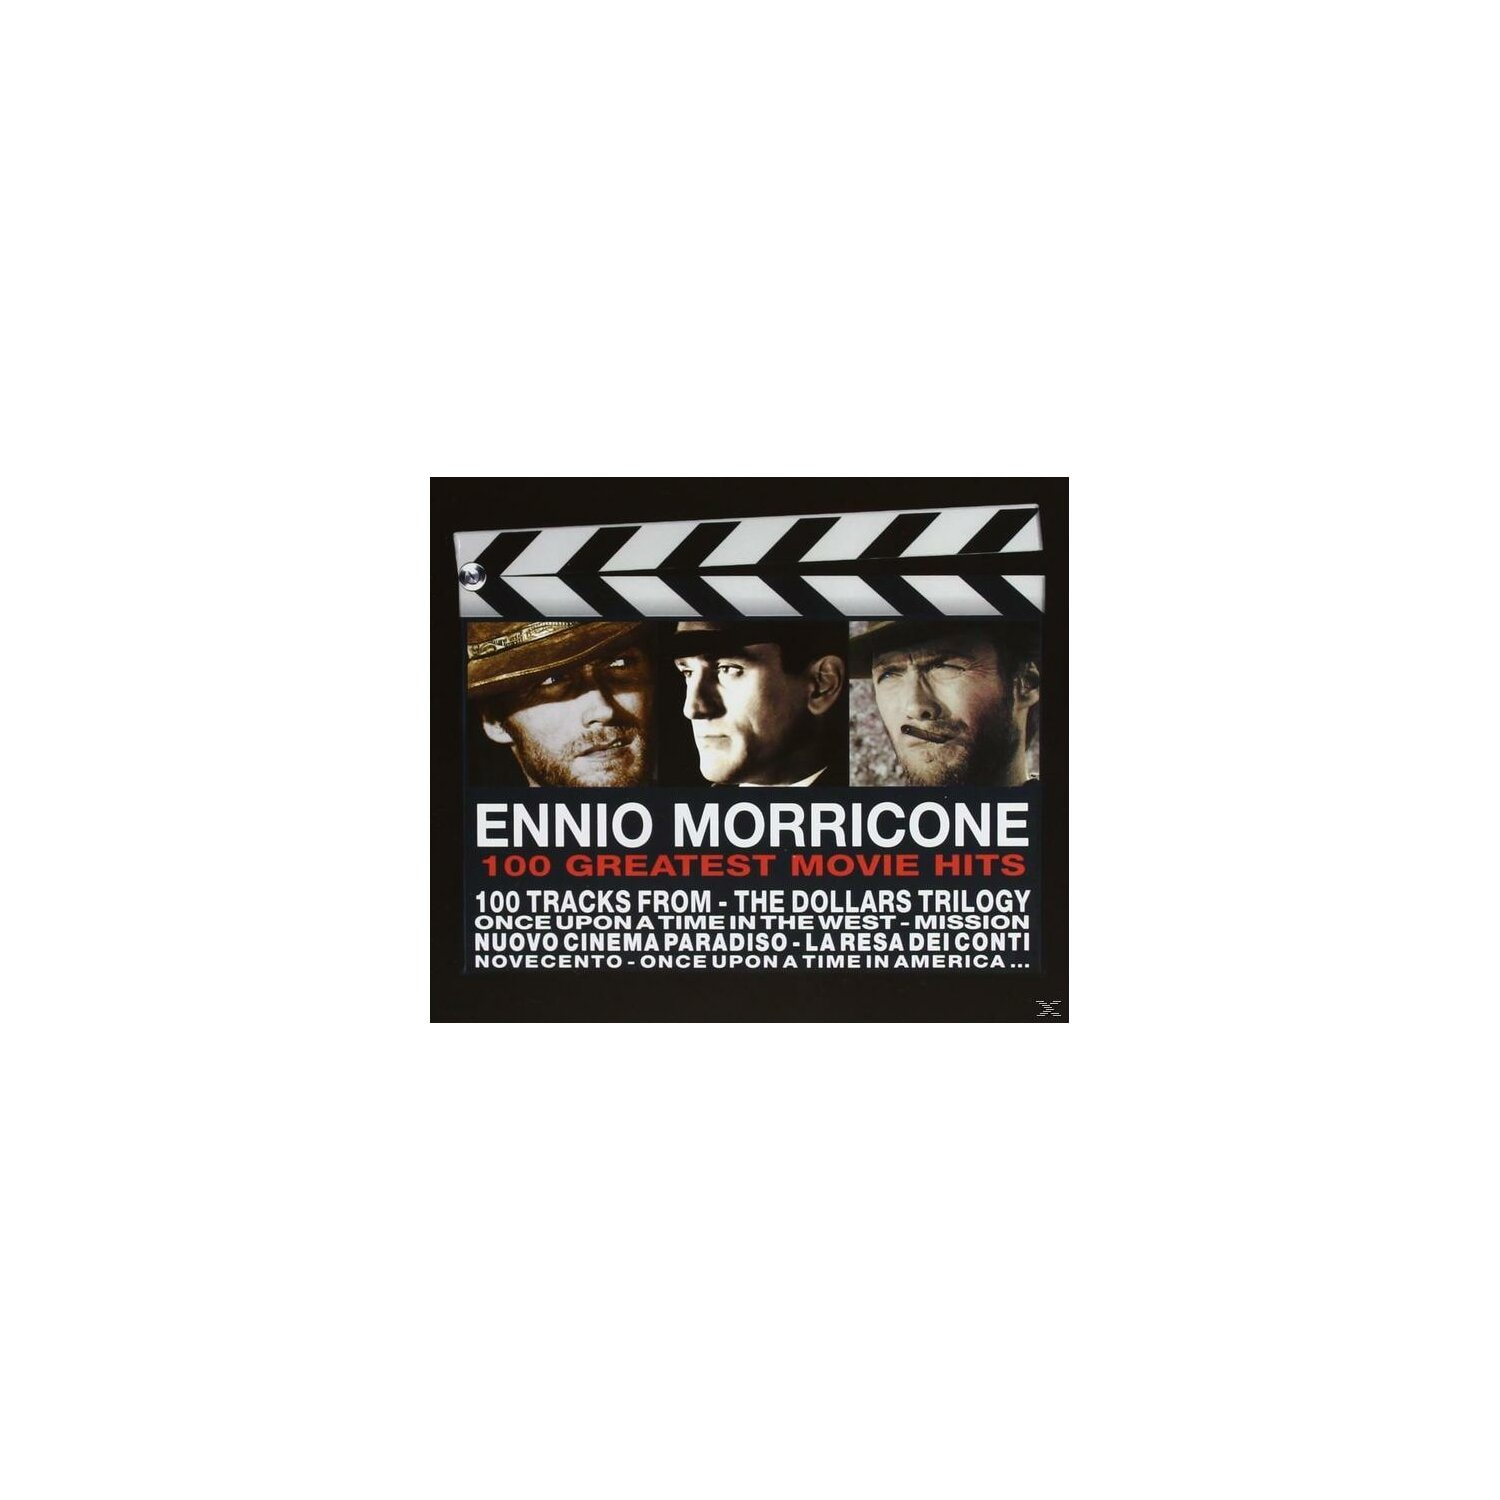 Ennio Morricone - 100 Greatest Movie Hits